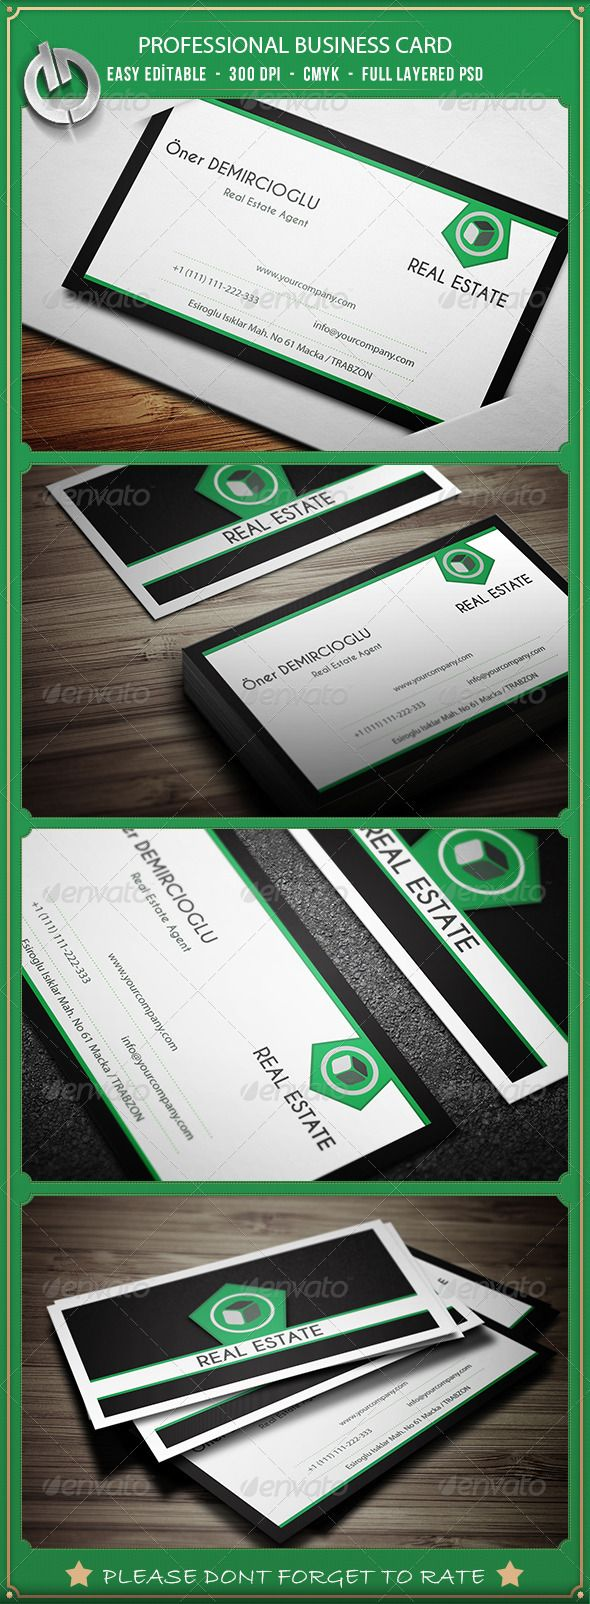 97 best Print Templates images on Pinterest | Cleanses, Clean ...